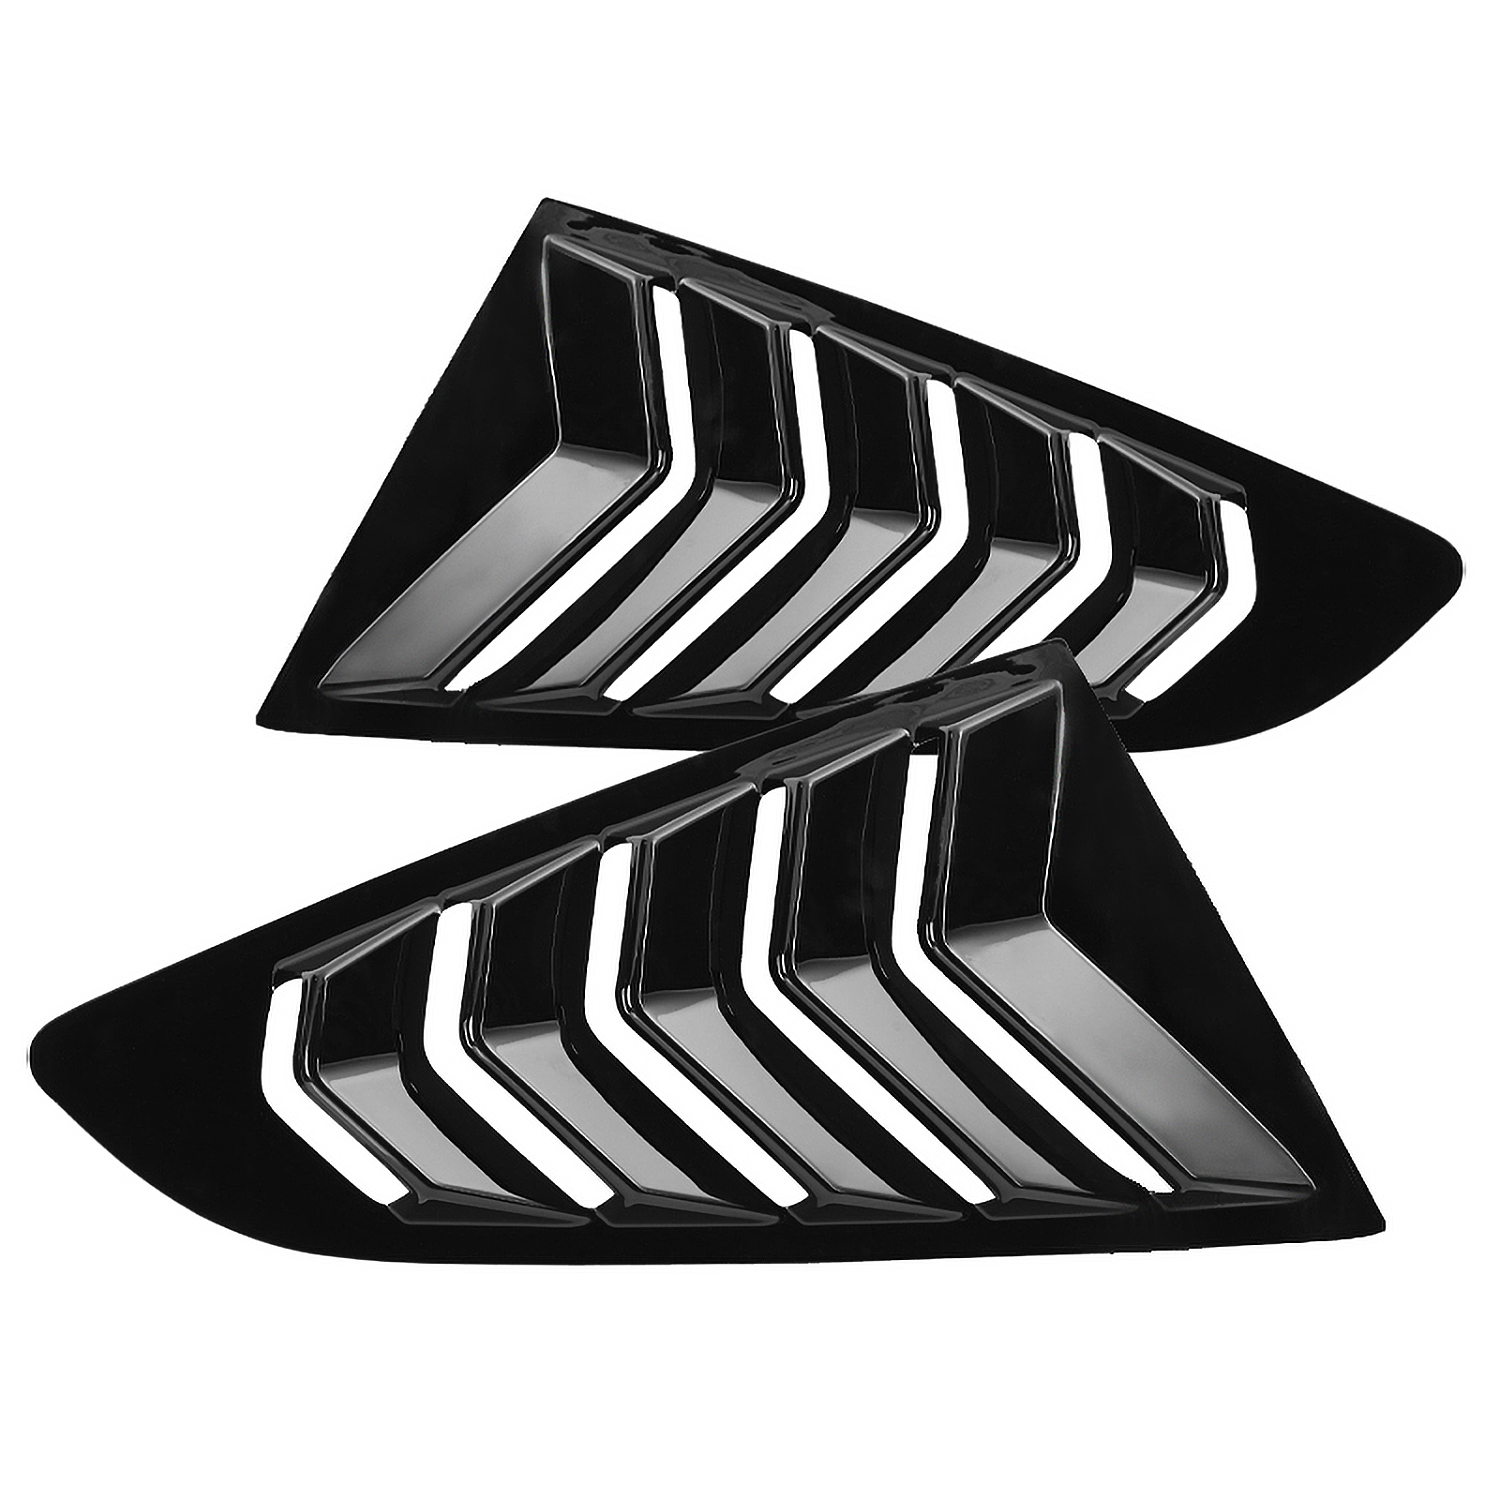 Spec-D Tuning Abs Black Quarter 1/4 Side Window Louver Cover for ...